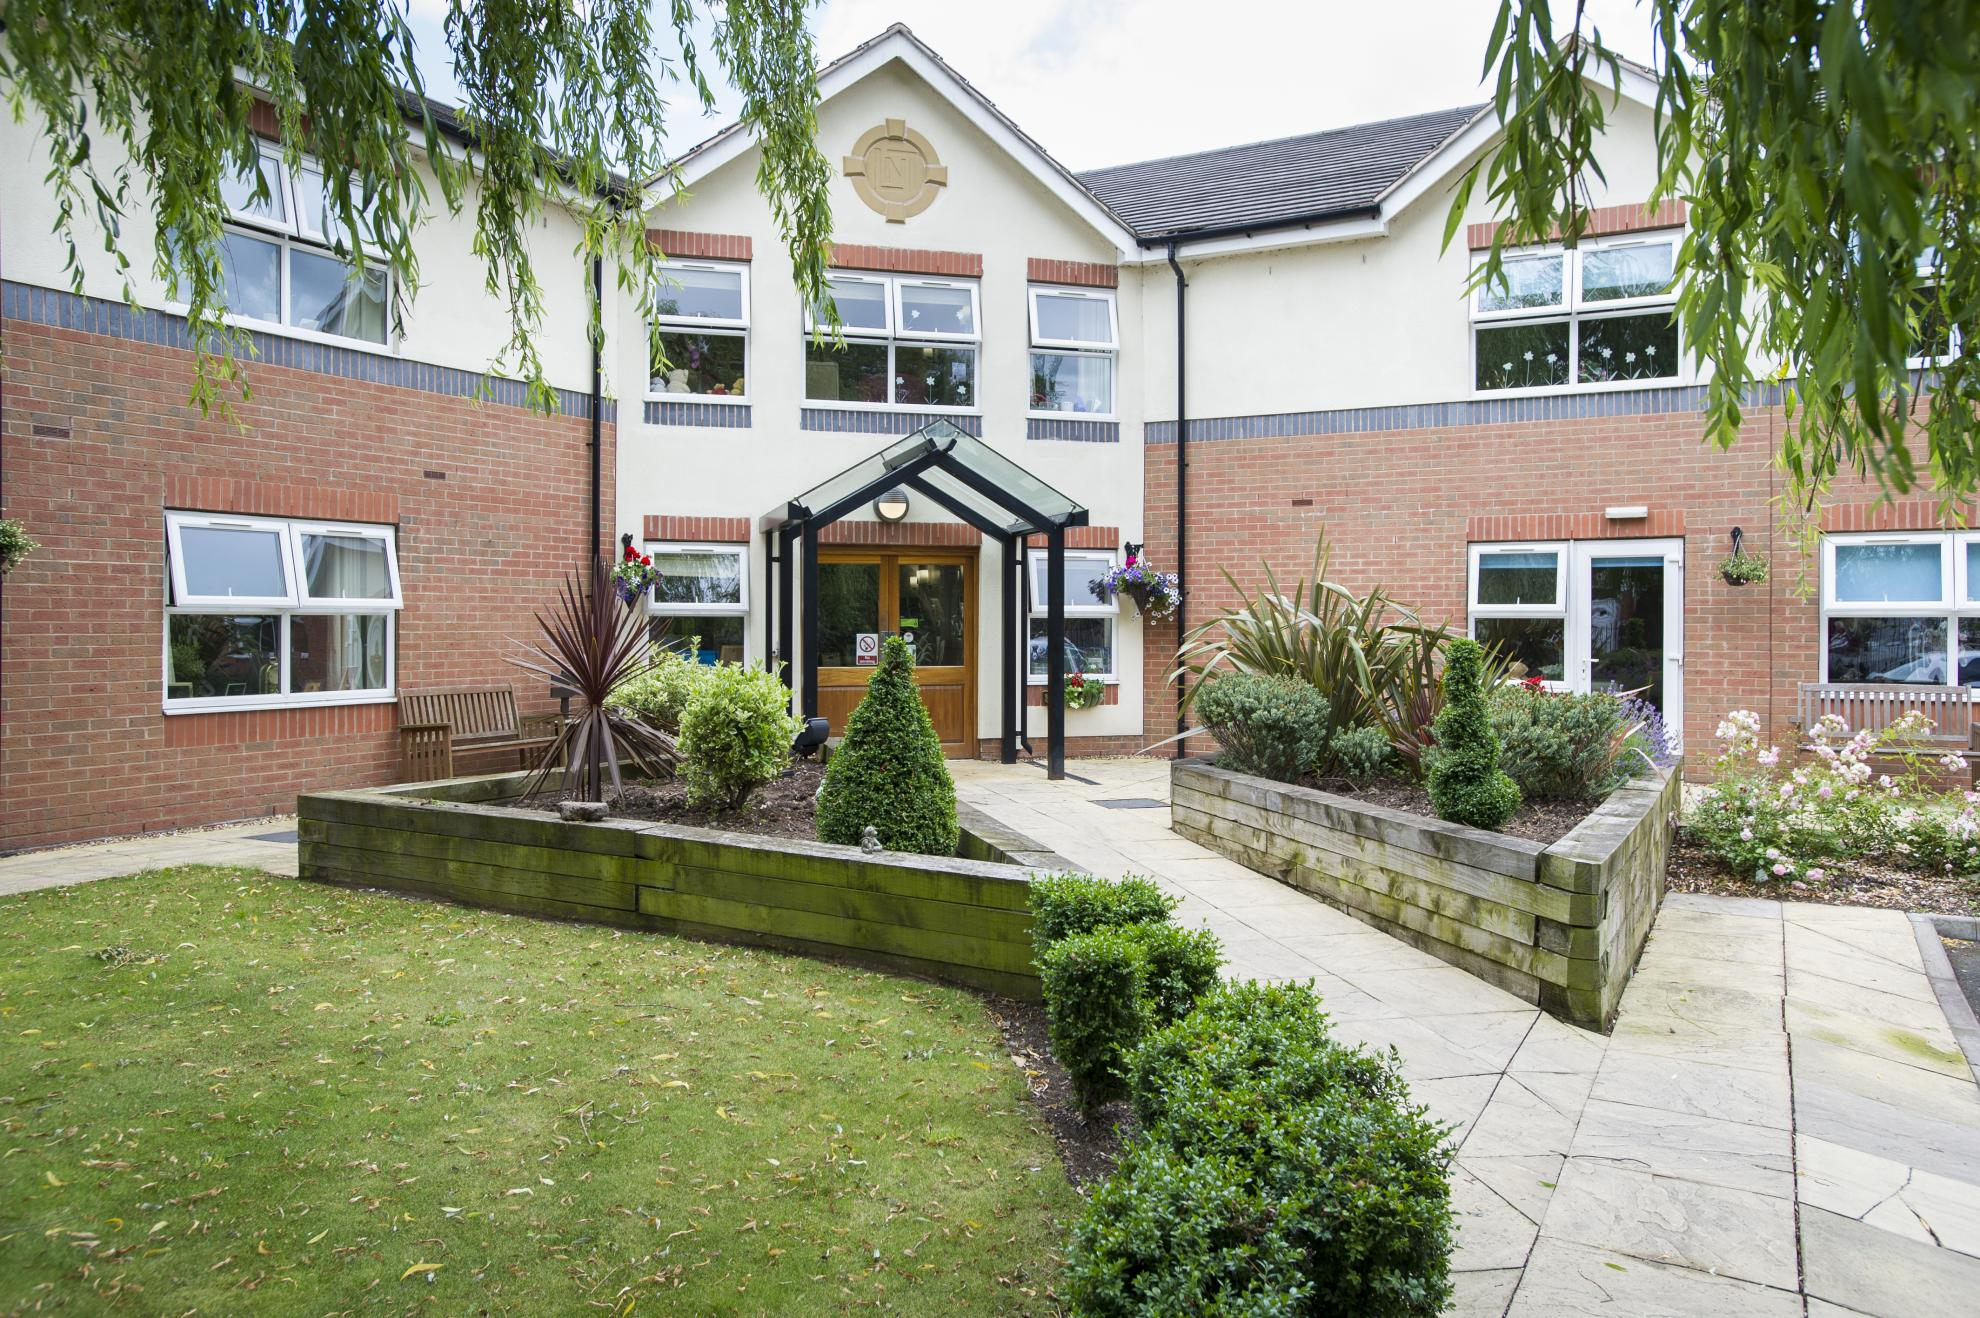 East Park Court Residential Care Home Wolverhampton